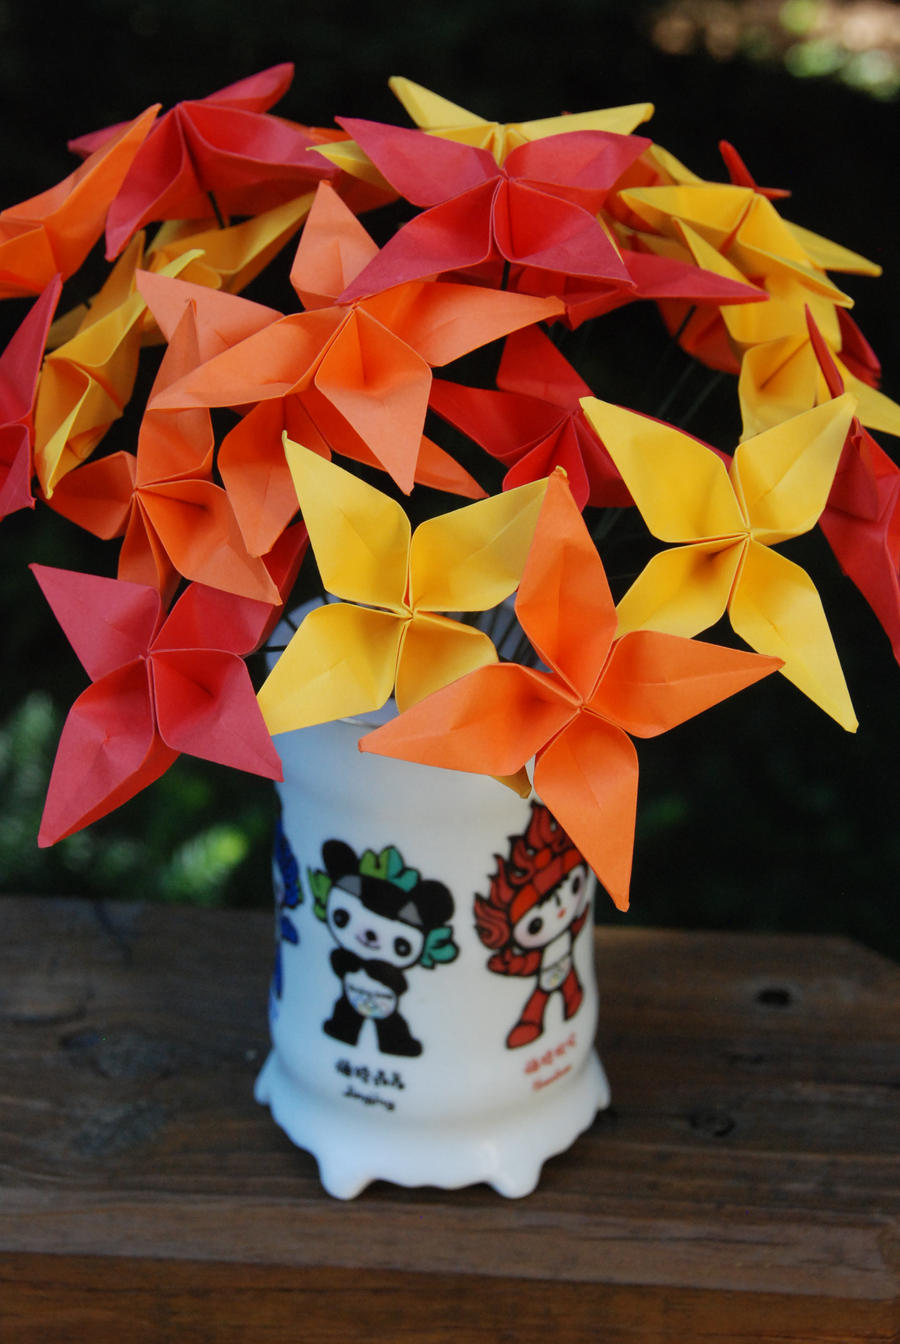 Origami star warm autumn bouquet by lisadeng on deviantart origami star warm autumn bouquet by lisadeng mightylinksfo